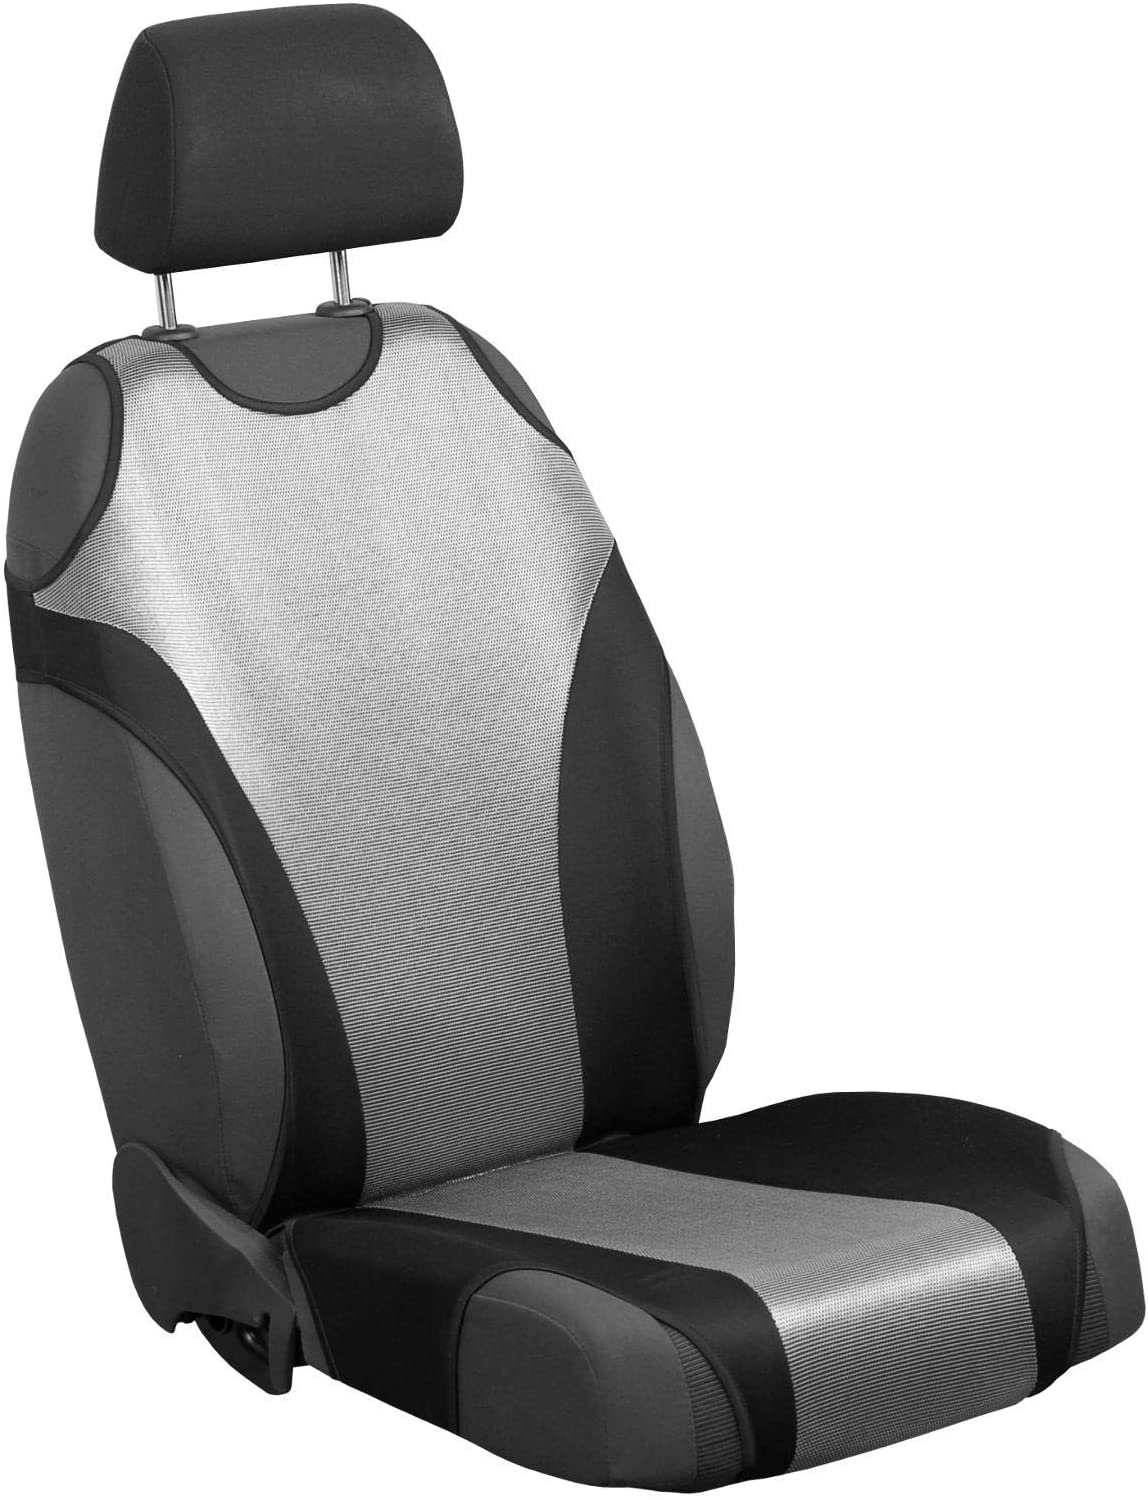 Zakschneider Car Seat Covers for Carina - Driver Seat - Color Premium Silver & Black